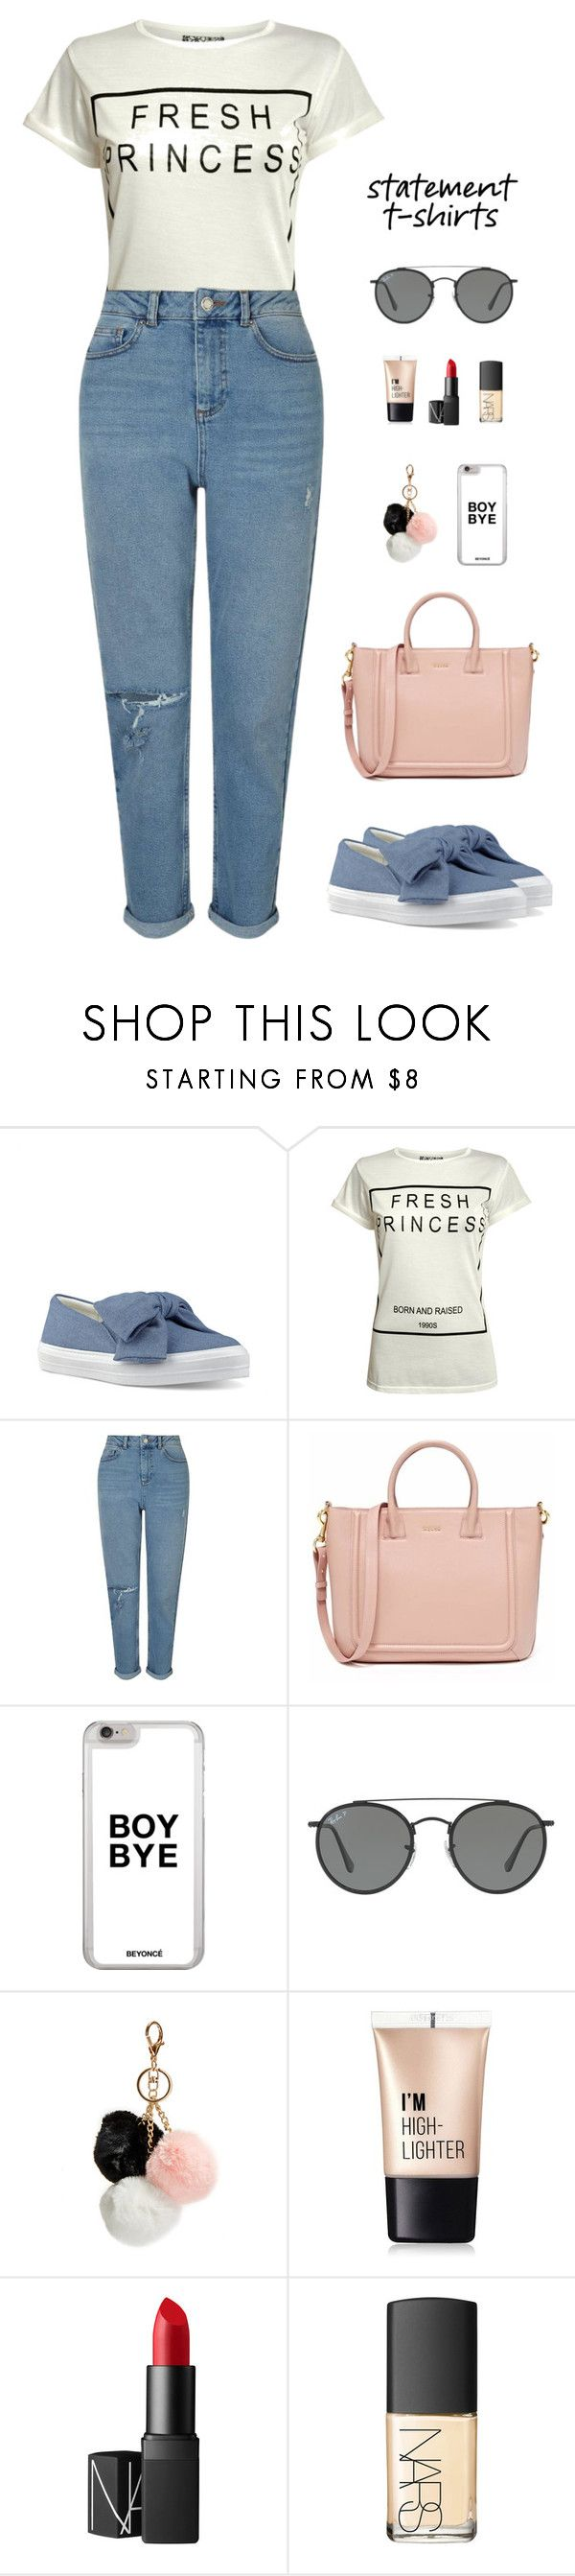 """""""Say It With A T-Shirt"""" by elliejd ❤ liked on Polyvore featuring Nine West, Pilot, Miss Selfridge, Ray-Ban, GUESS, Charlotte Russe, NARS Cosmetics and slogantshirts"""